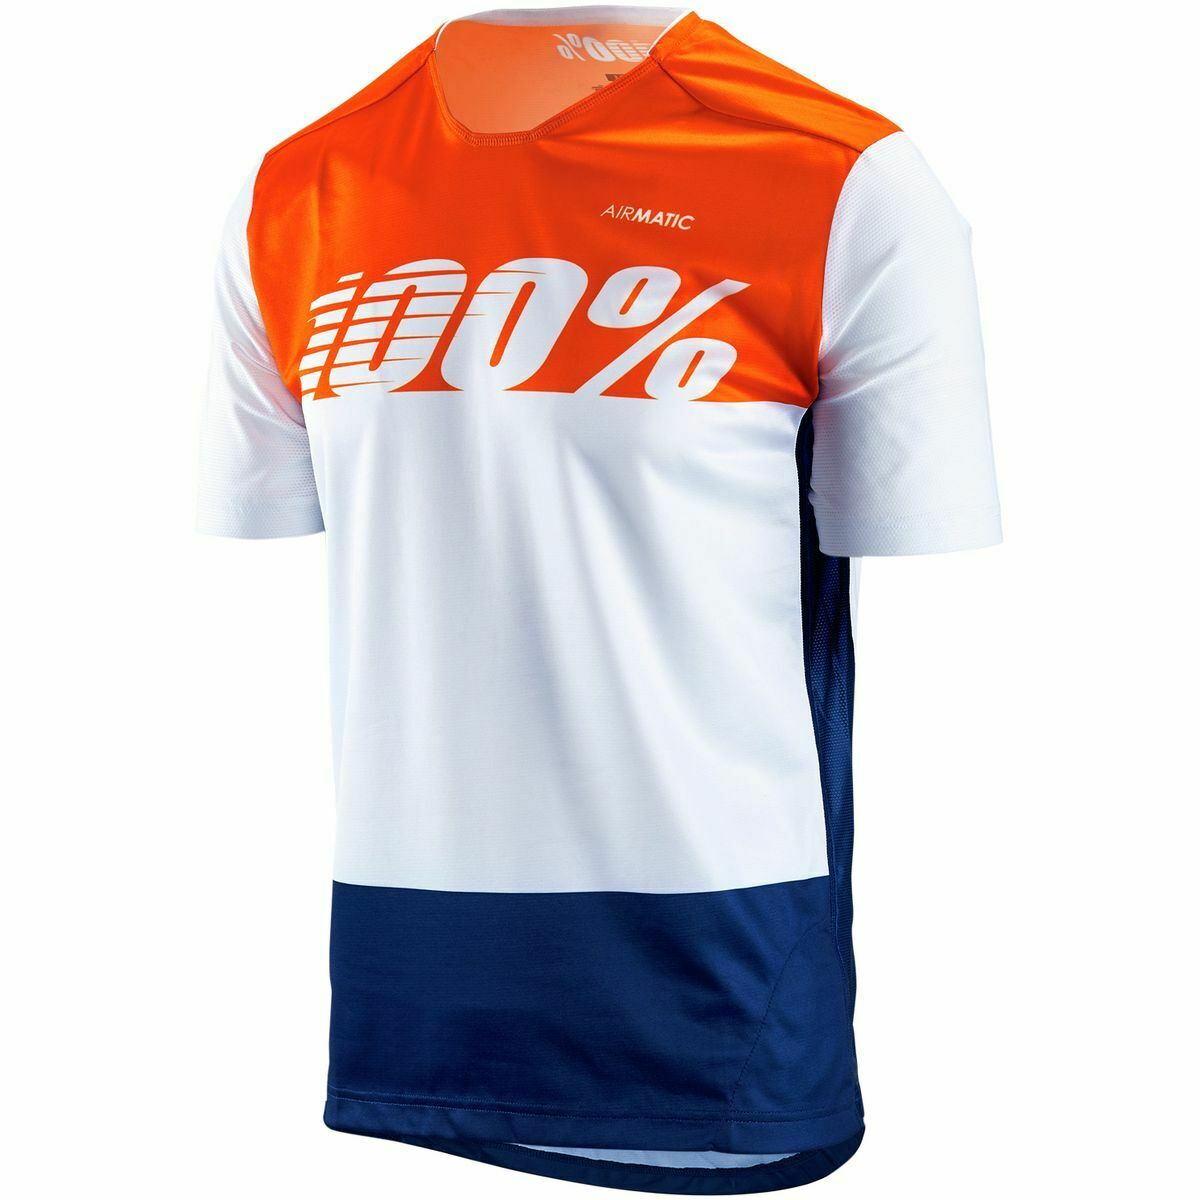 100%  Airmatic Jersey White Flag XLG  new style